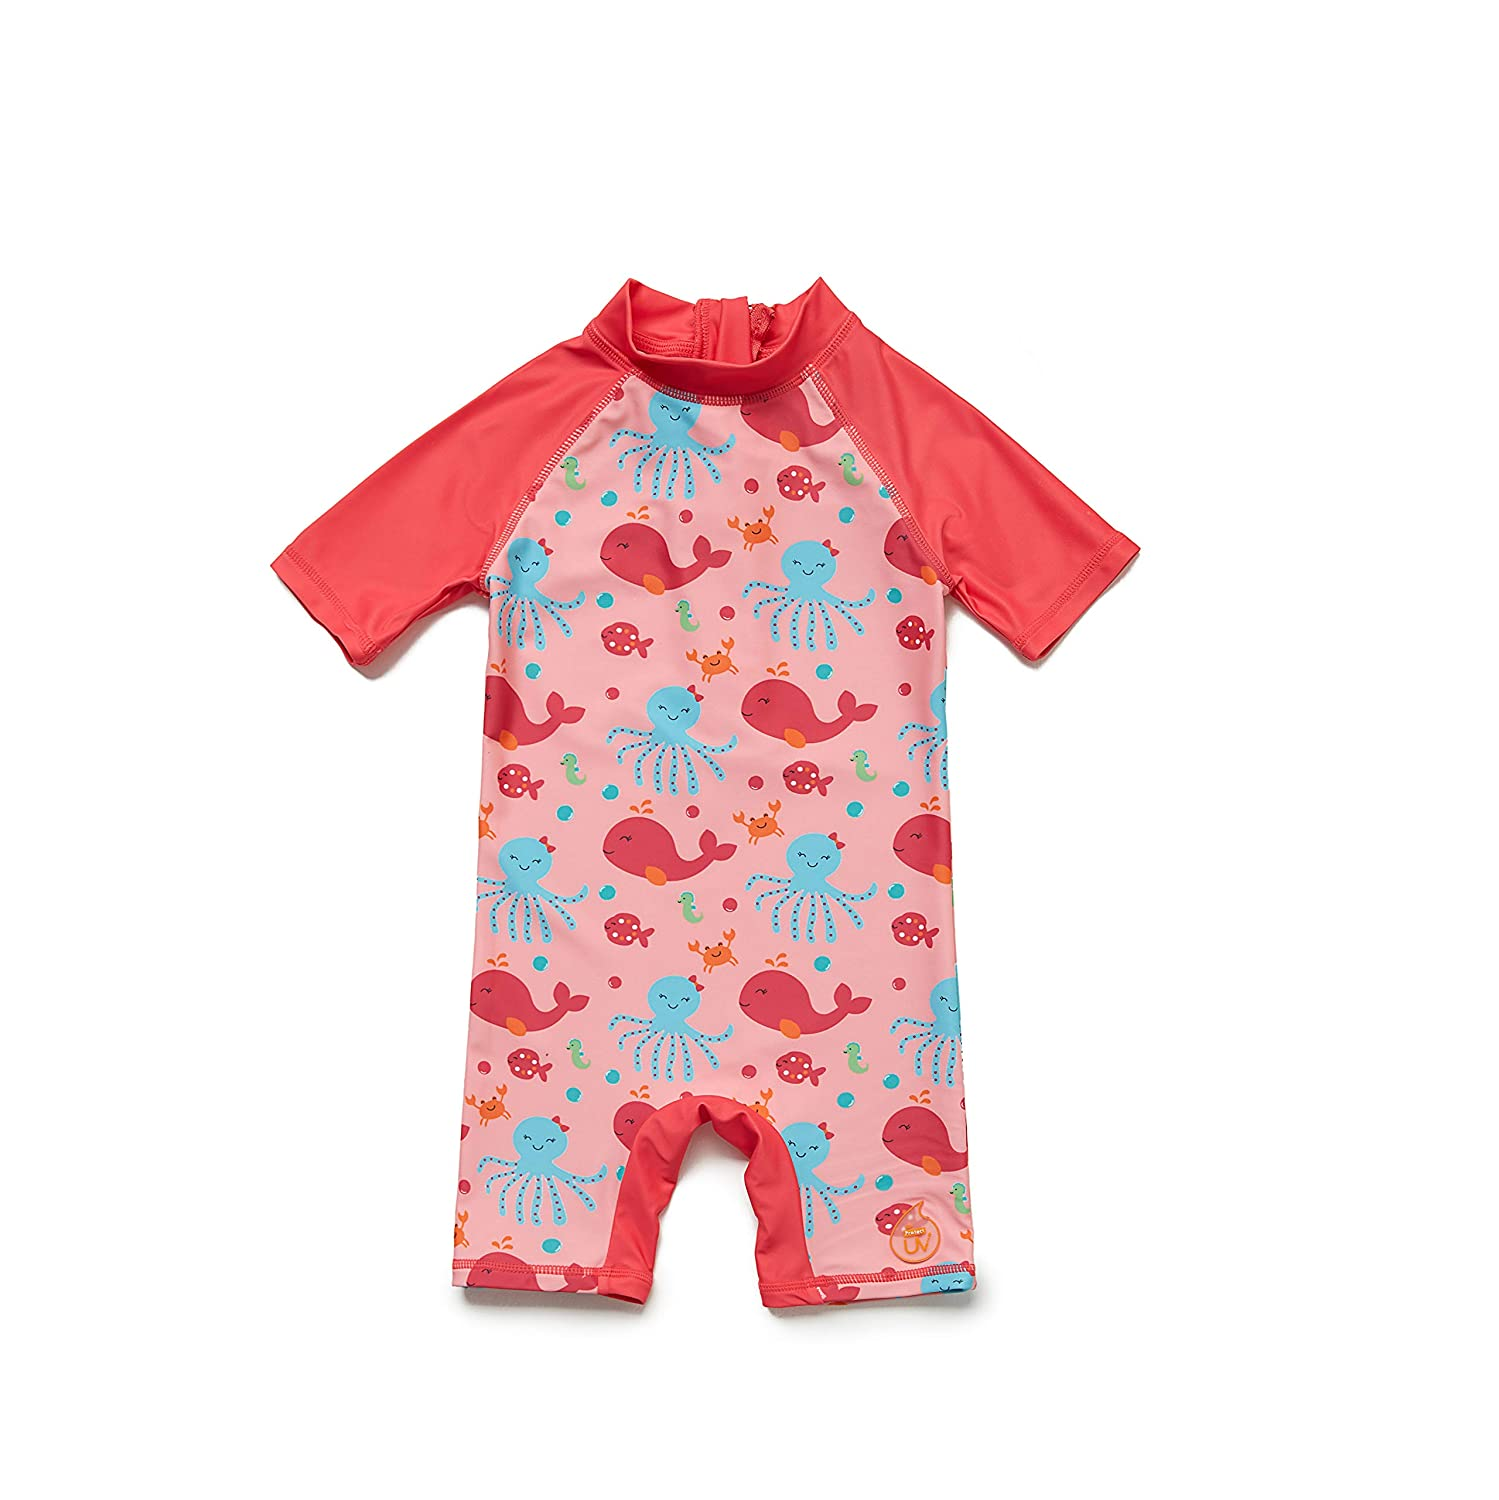 Watermelon Red, 18-24Months Sun Protection One Pieces Short Sleeves Swimsuit with Sun Hat Bonverano Baby Girls Sunsuit UPF 50